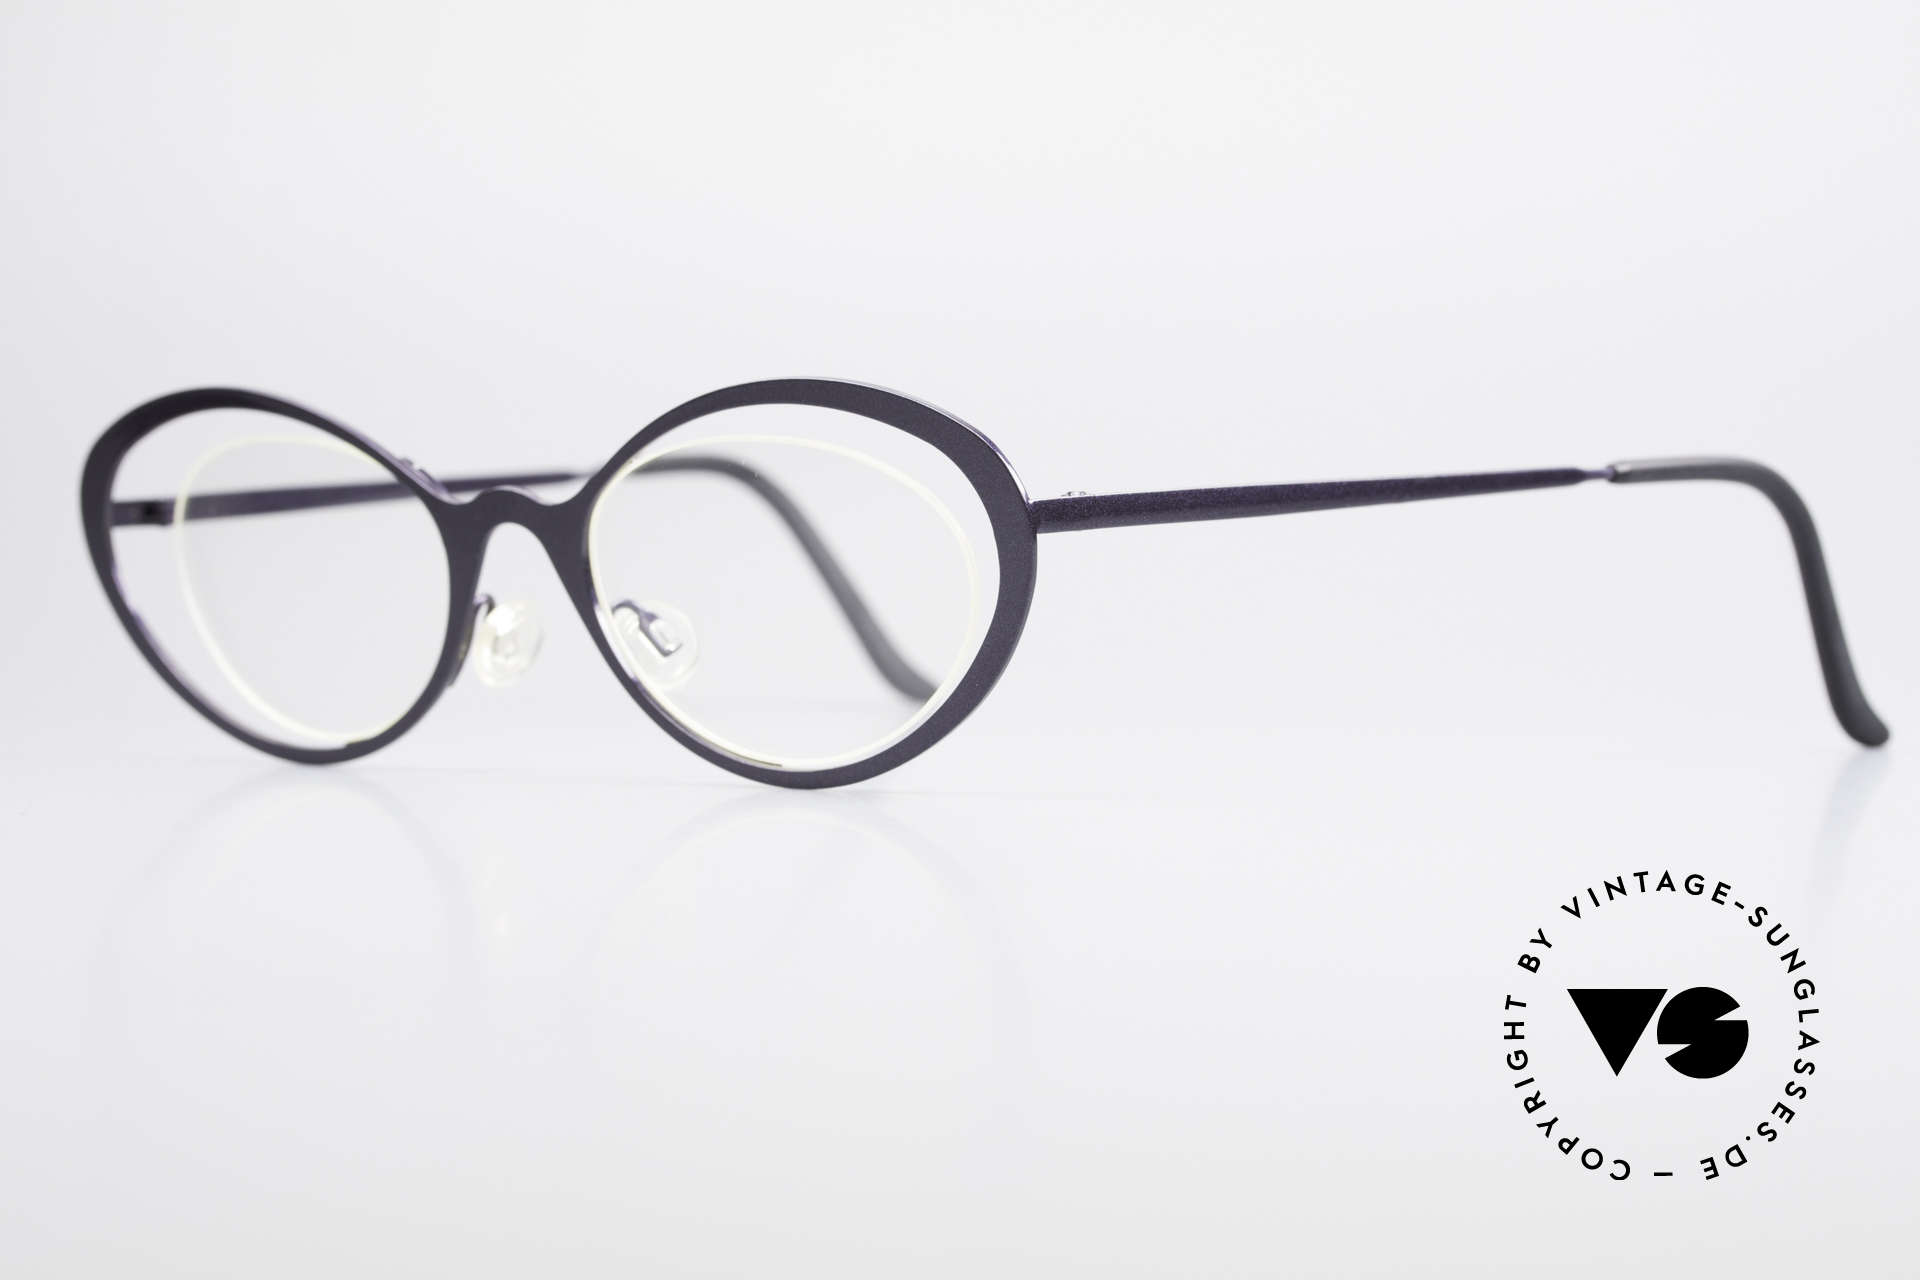 Theo Belgium LuLu Rimless Cateye Glasses 90's, lenses are fixed with a nylor thread (Cat's eye style), Made for Women